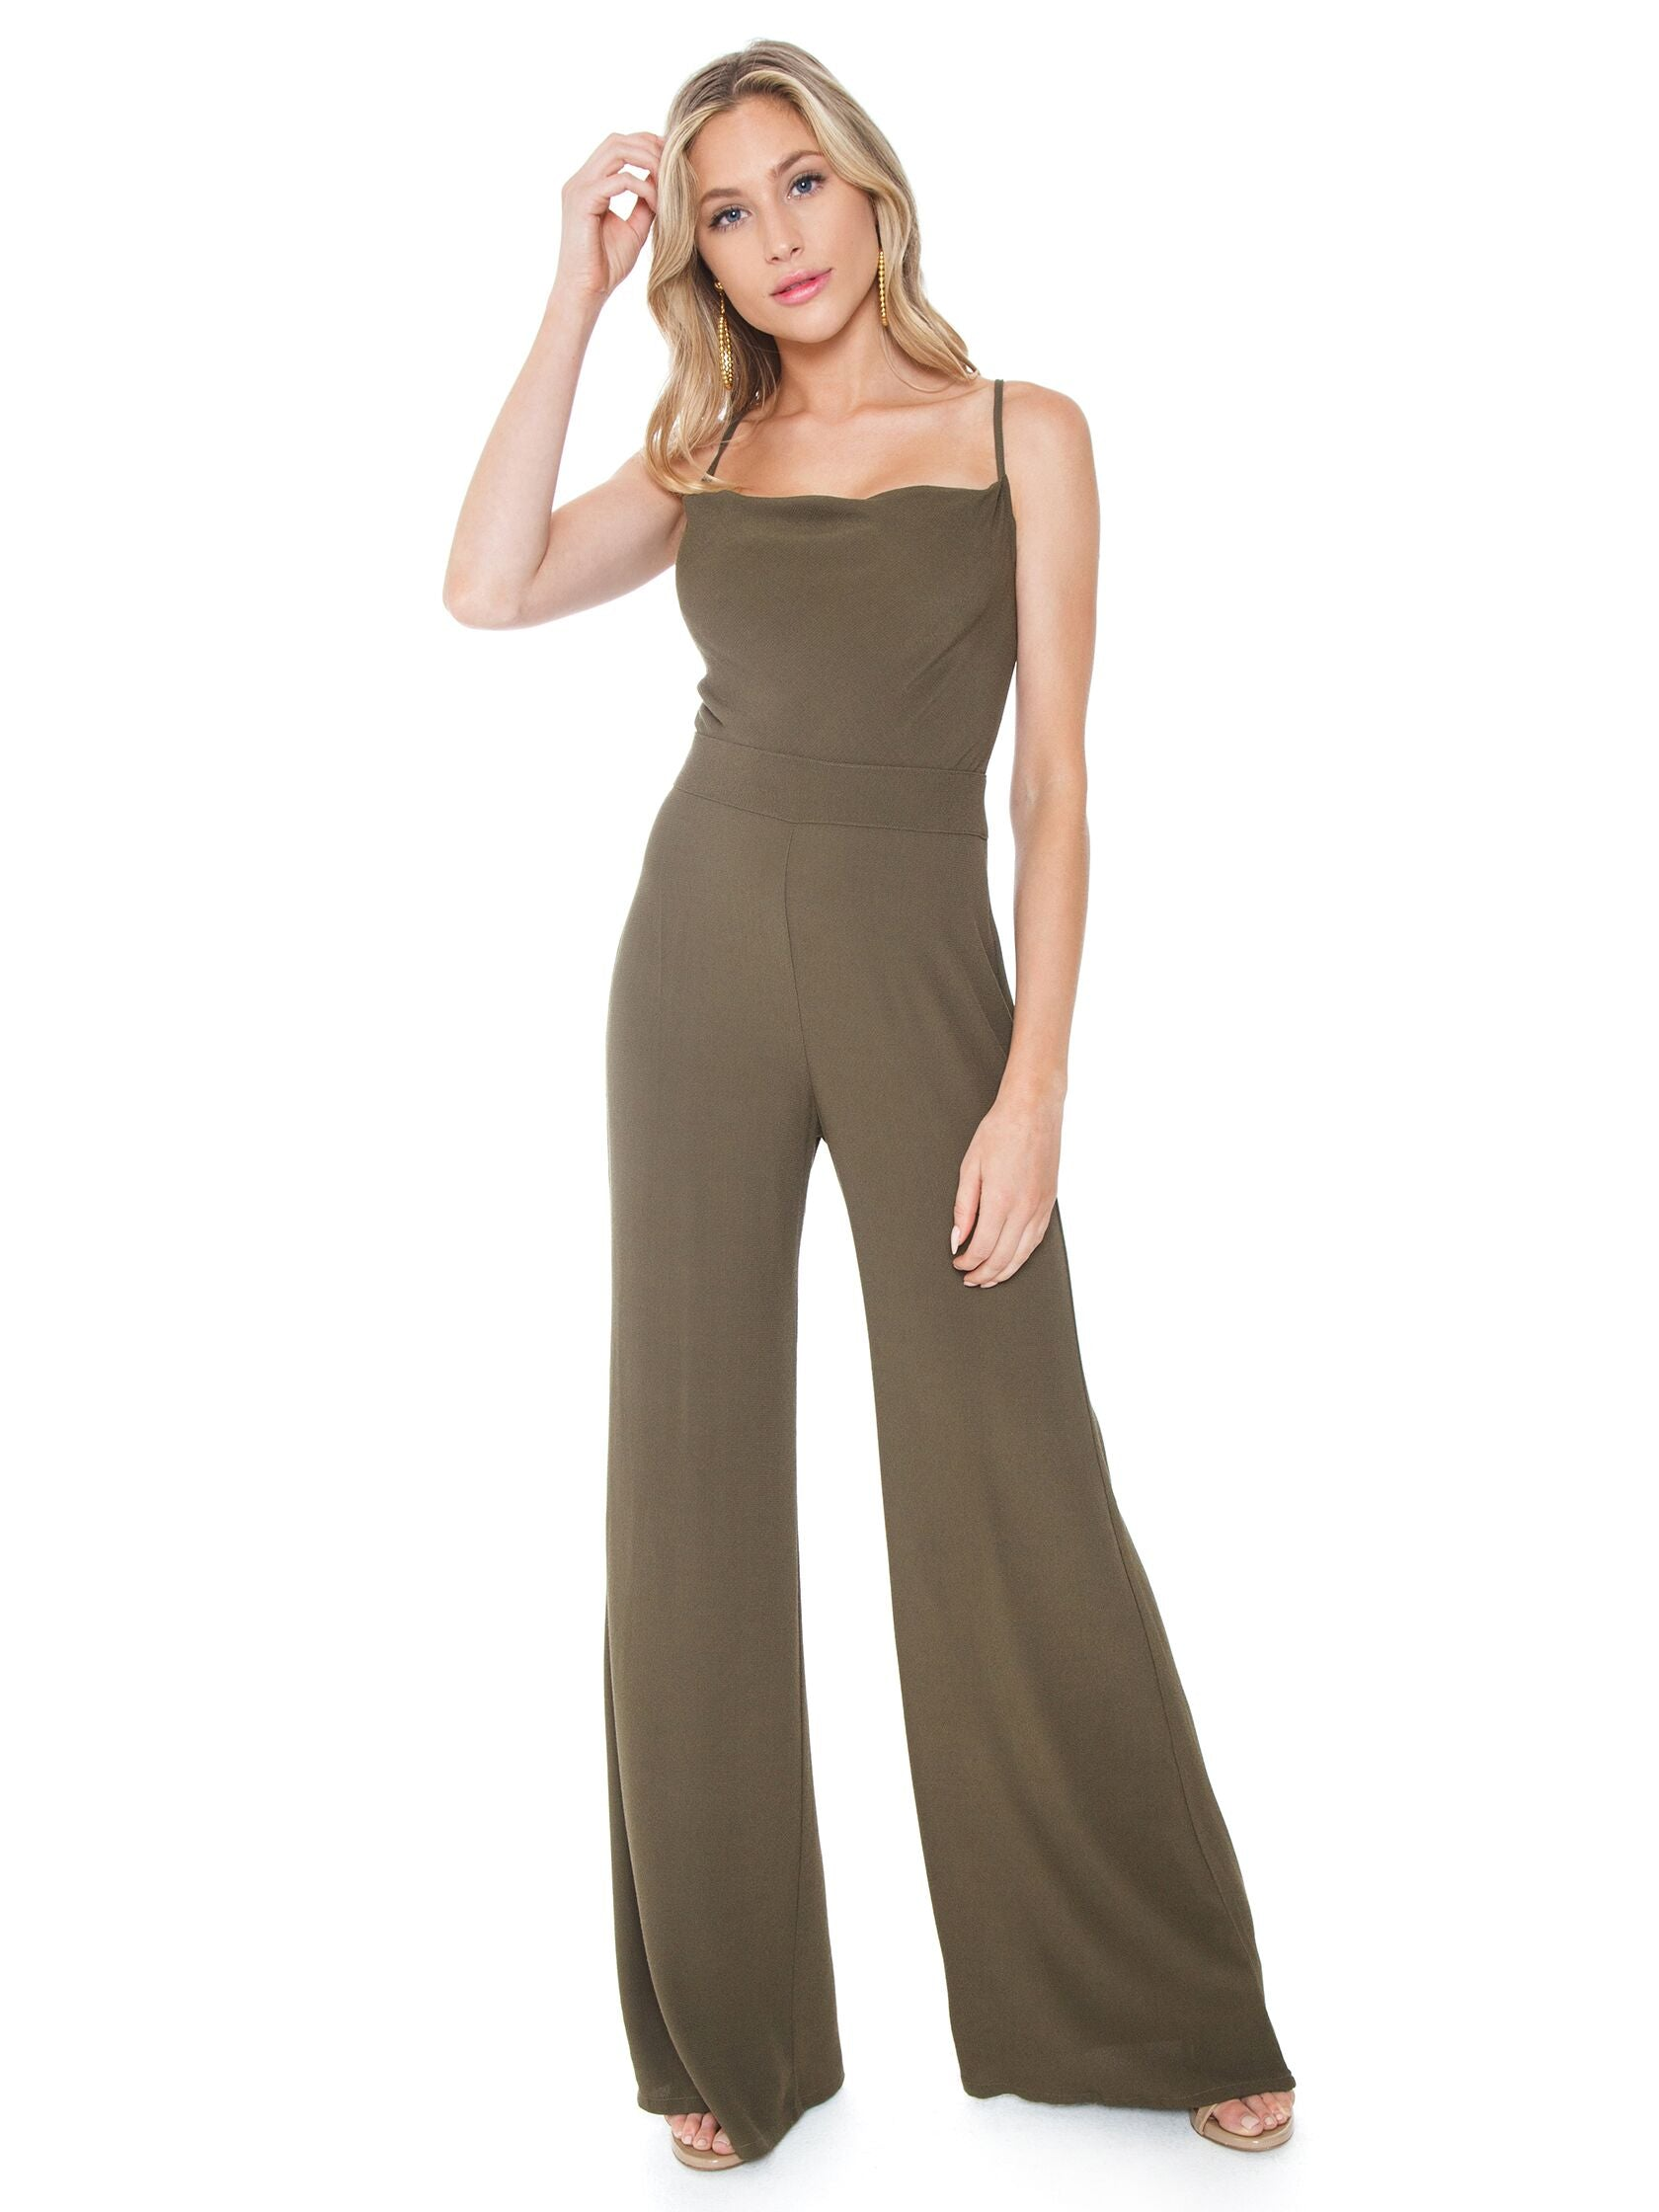 Girl outfit in a jumpsuit rental from Flynn Skye called Coco Jumper